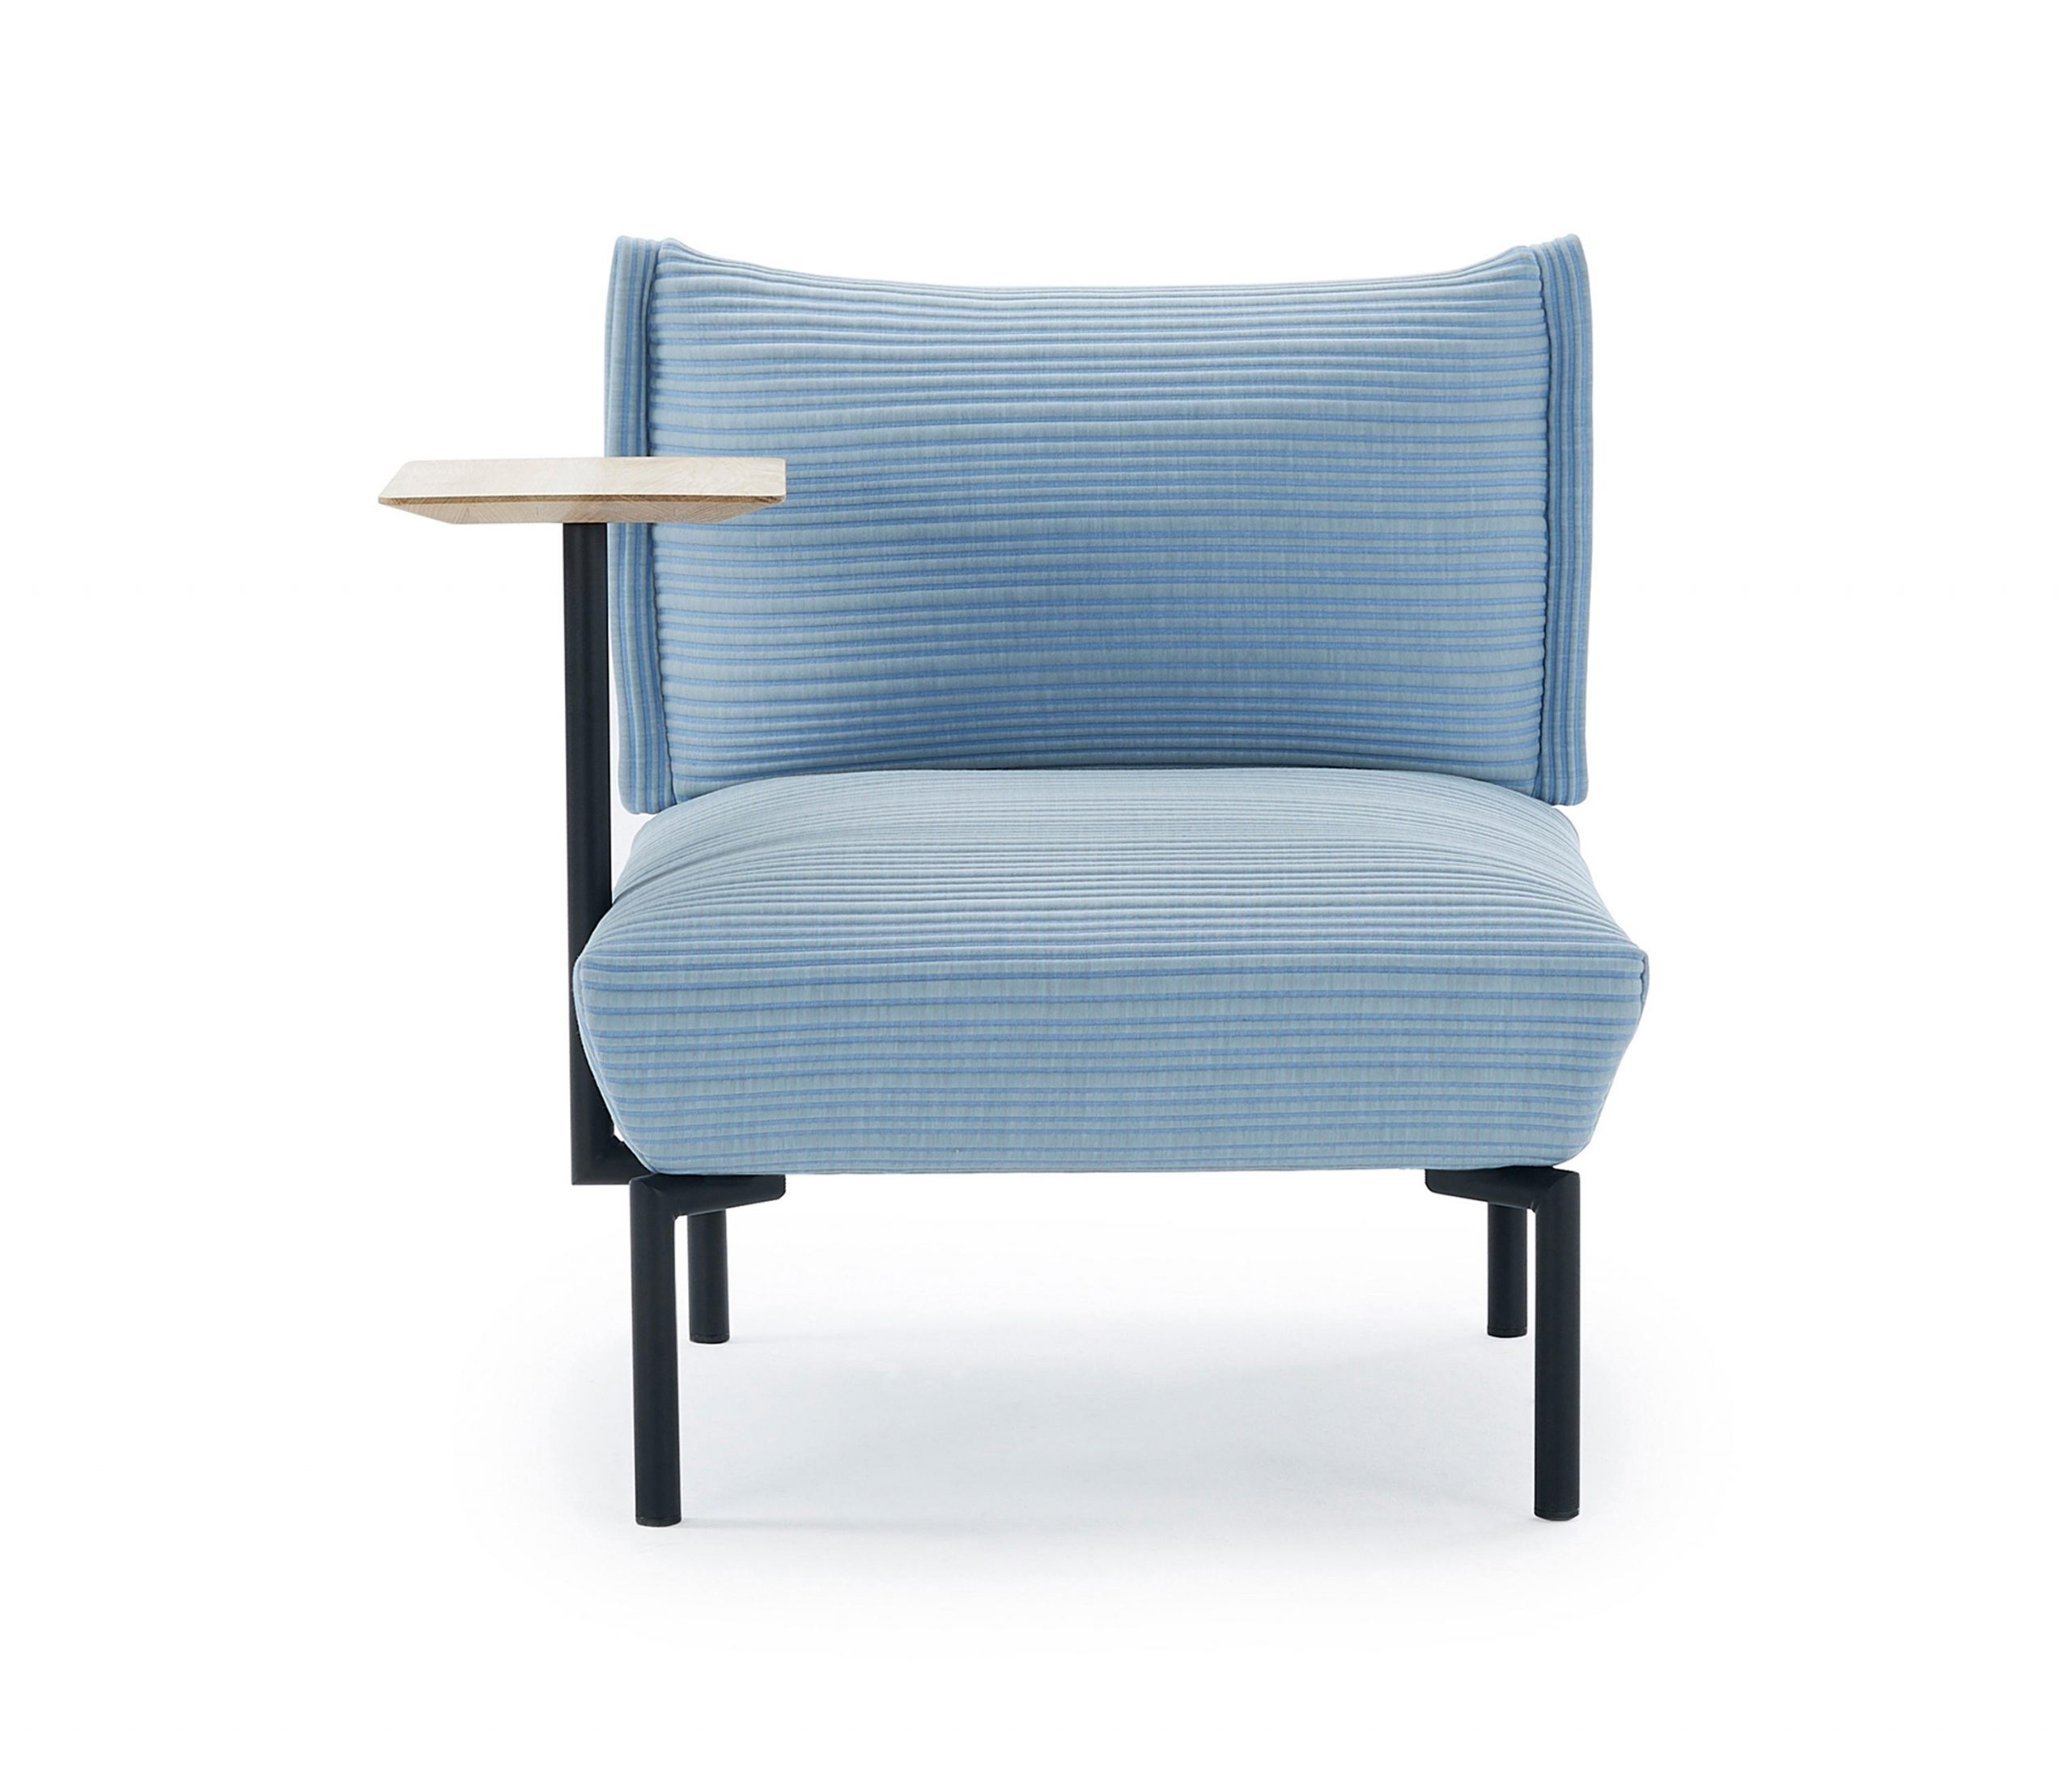 Click Seating Collection by Toni J. Castaño for Sancal